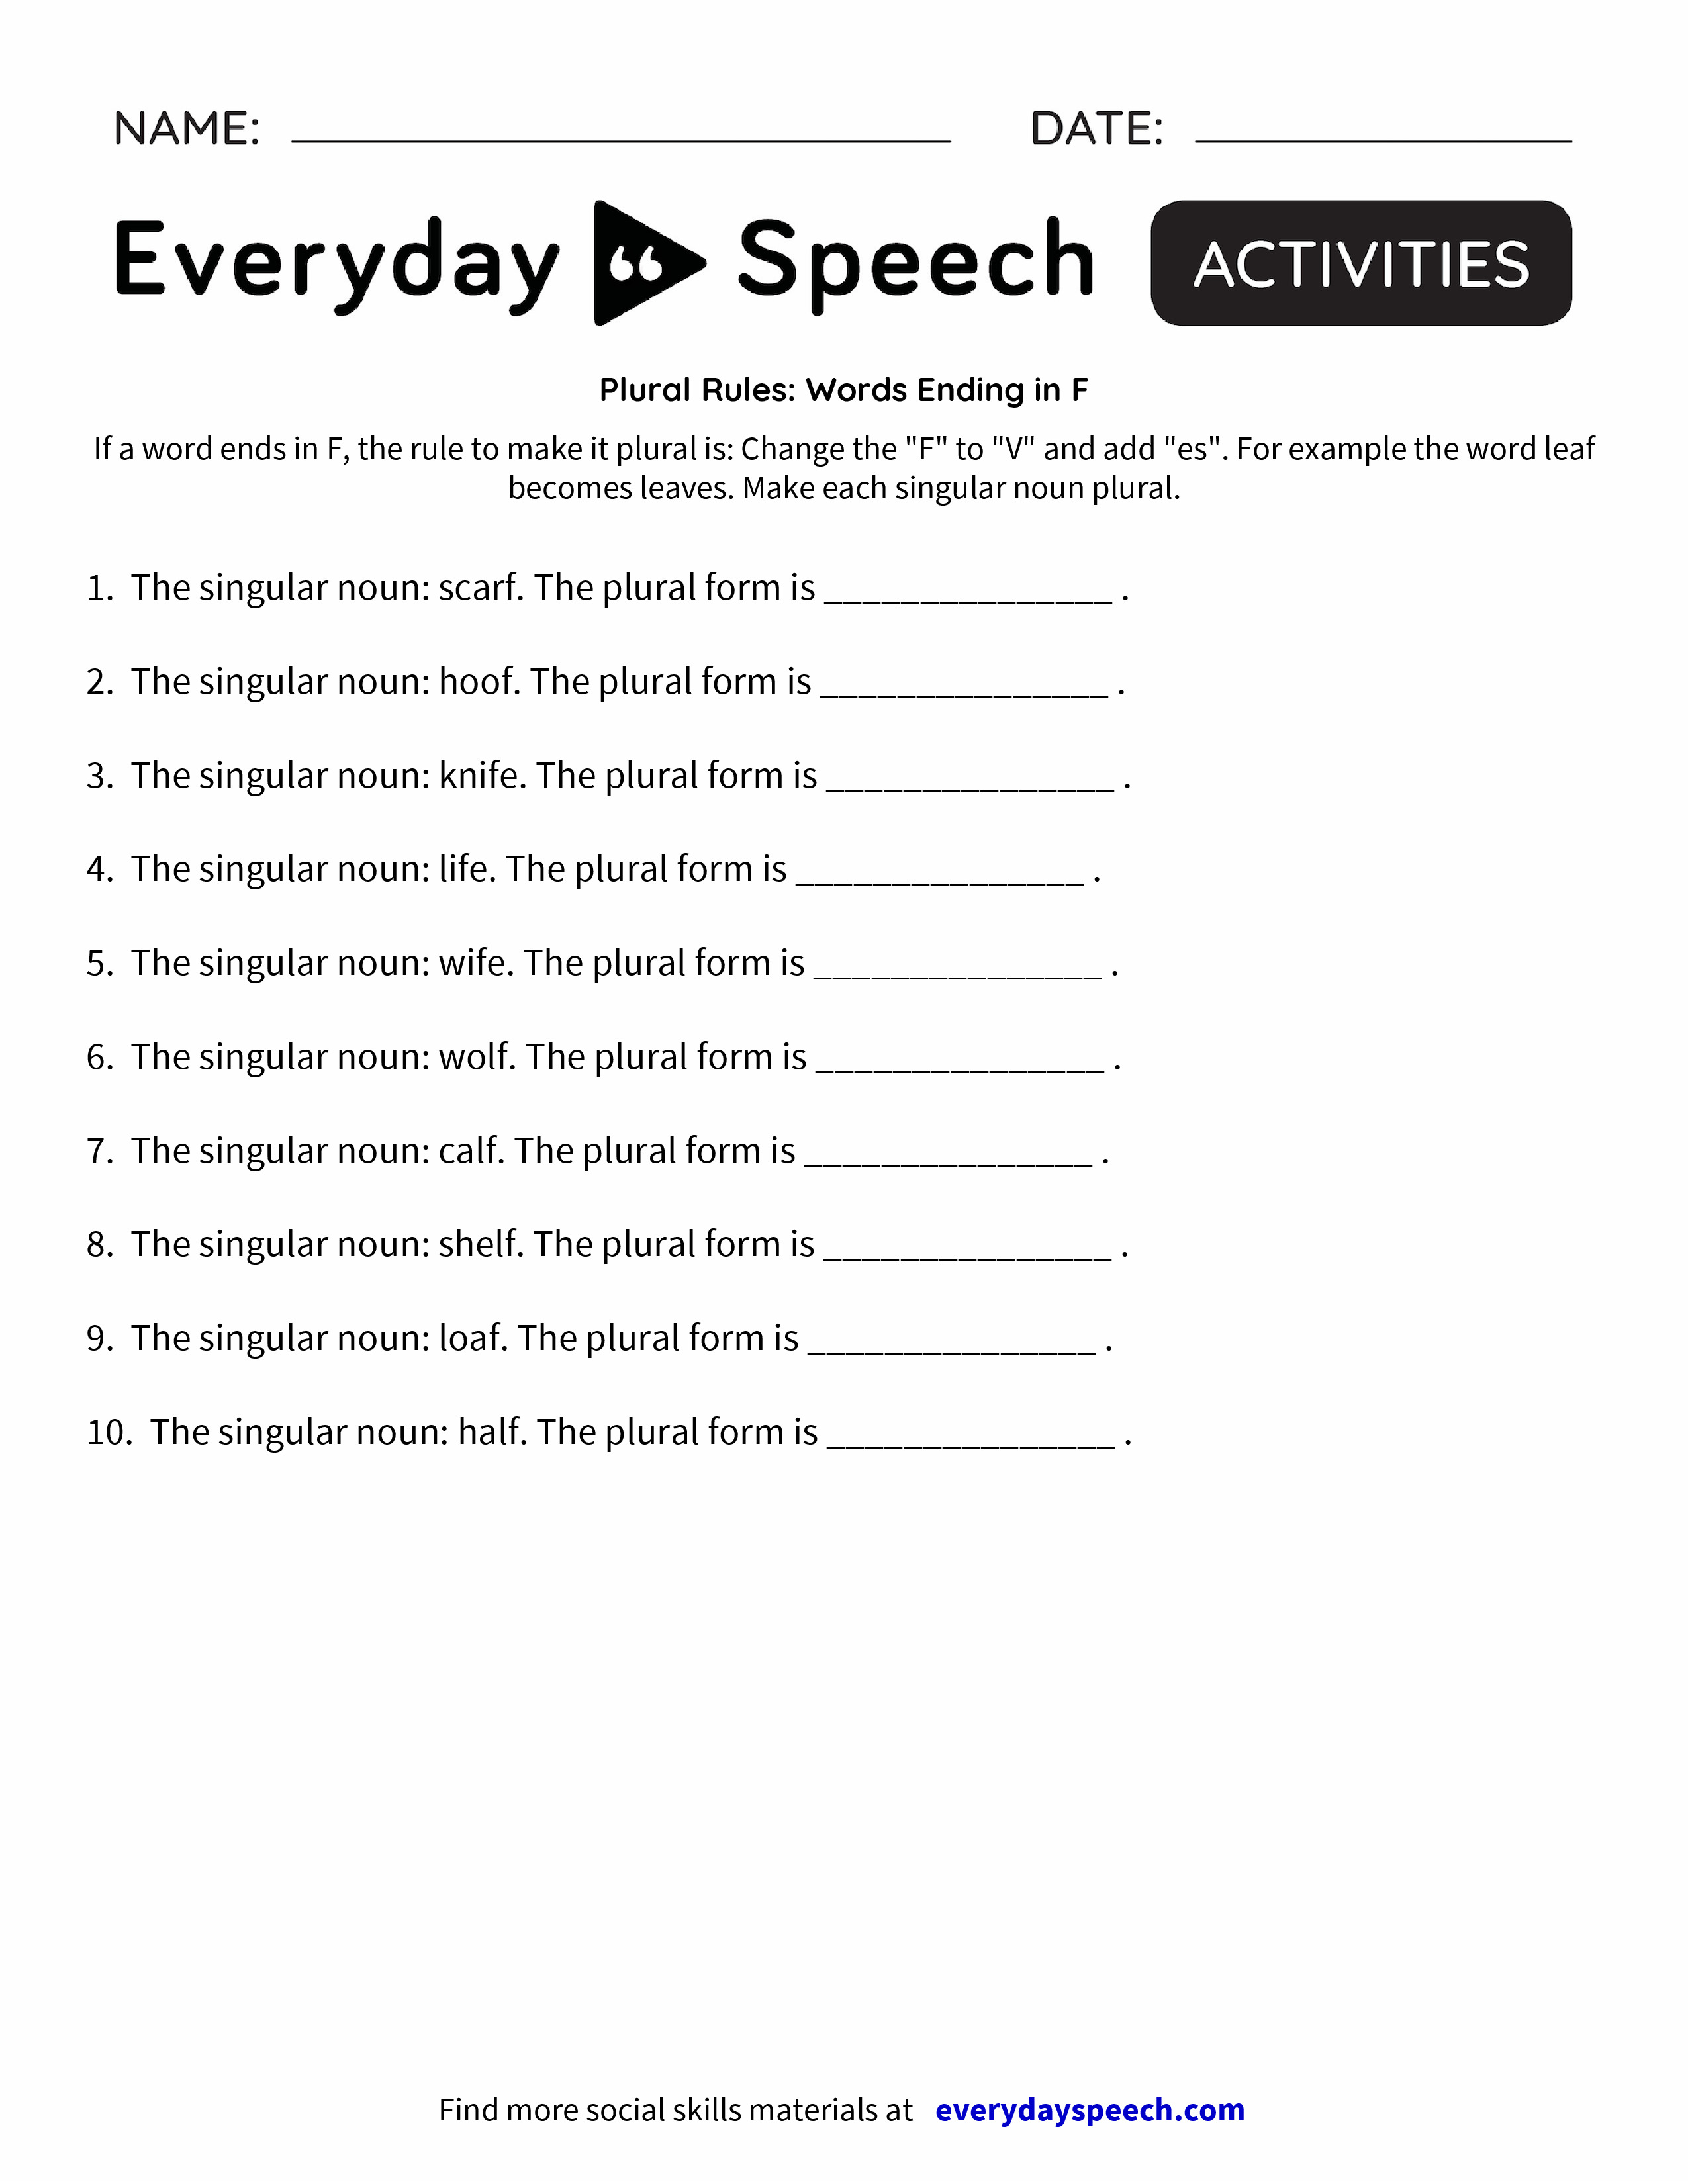 Plural Rules Words Ending In F Everyday Speech Everyday Speech